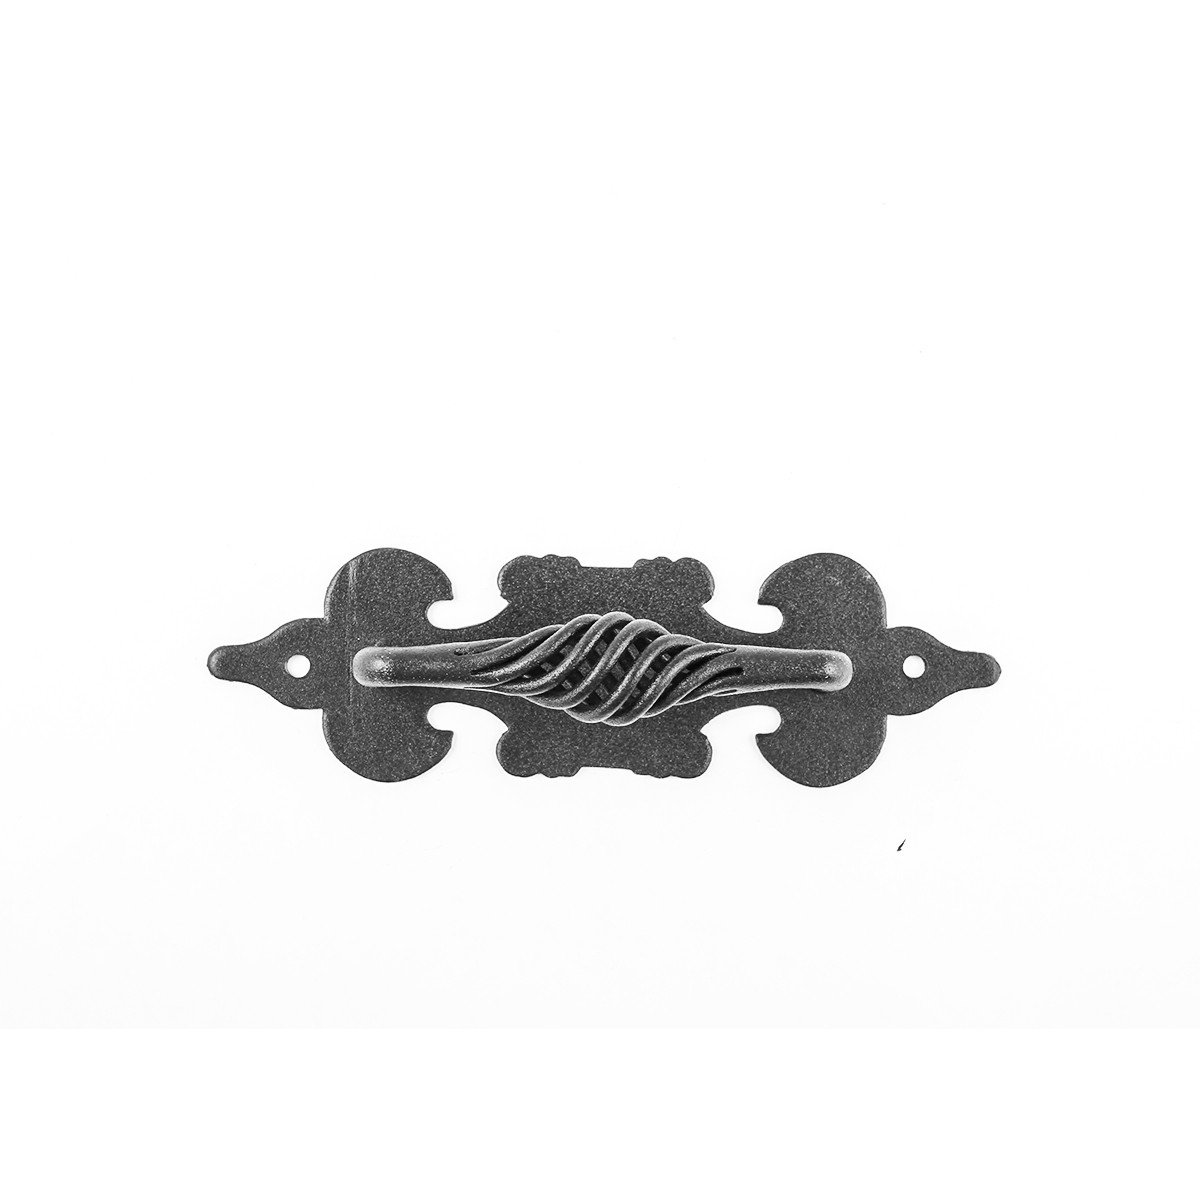 2 Cabinet Pull Birdcage Black Wrought Iron 6 Furniture Hardware Cabinet Pull Cabinet Hardware